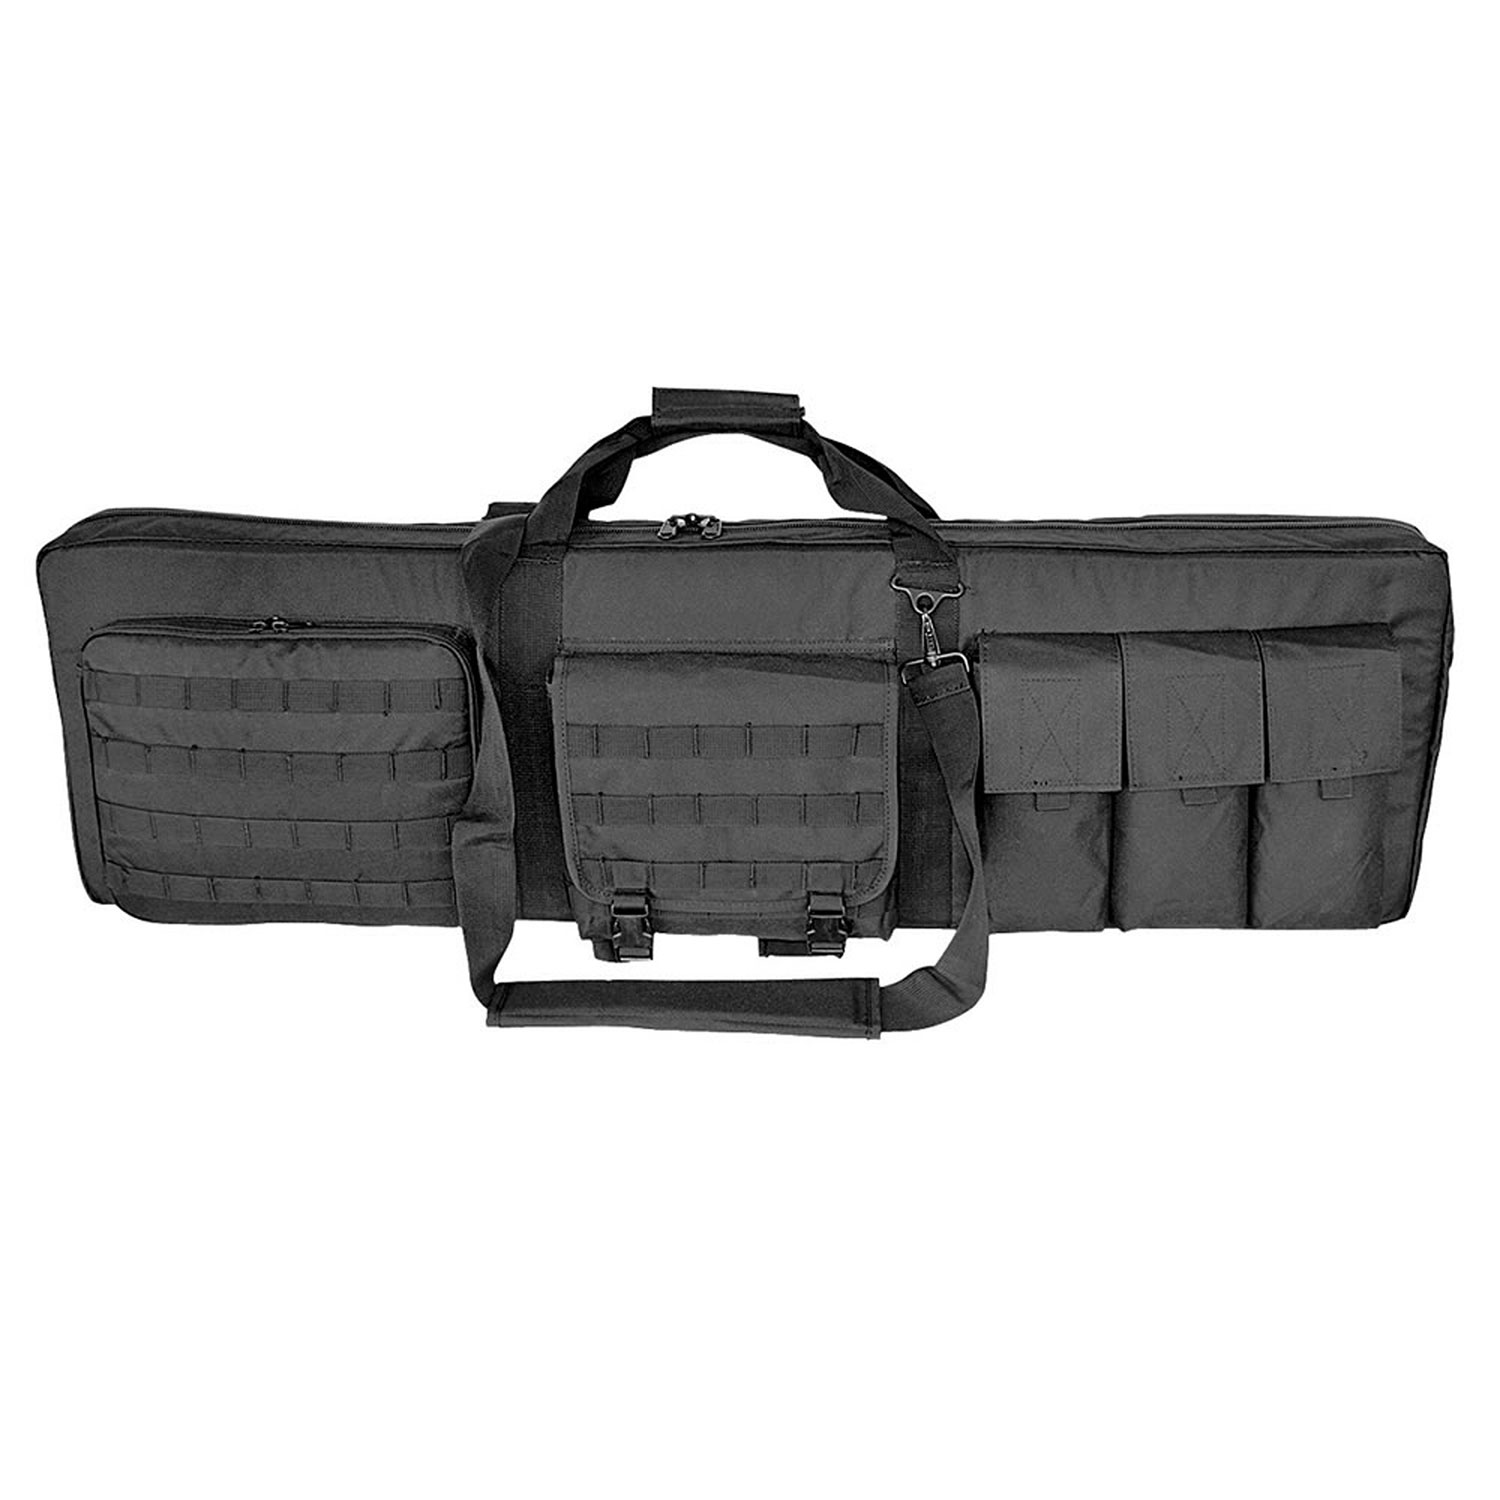 "Extreme Value 36"" Double Rifle Case with Mat"